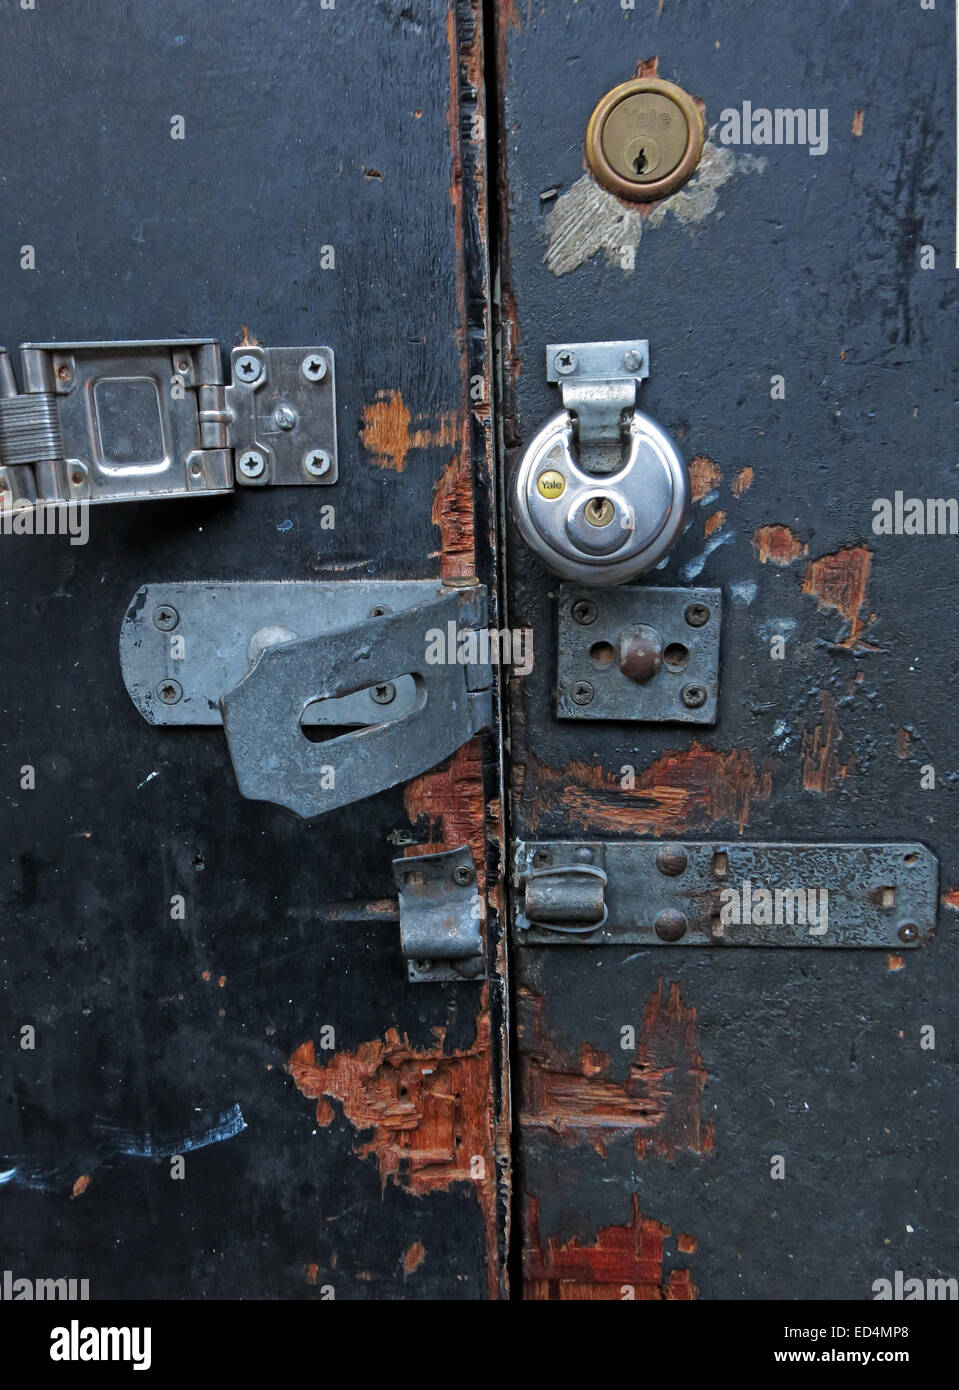 Ultra secure door with many locks, yale, padlock and bolts Stock Photo